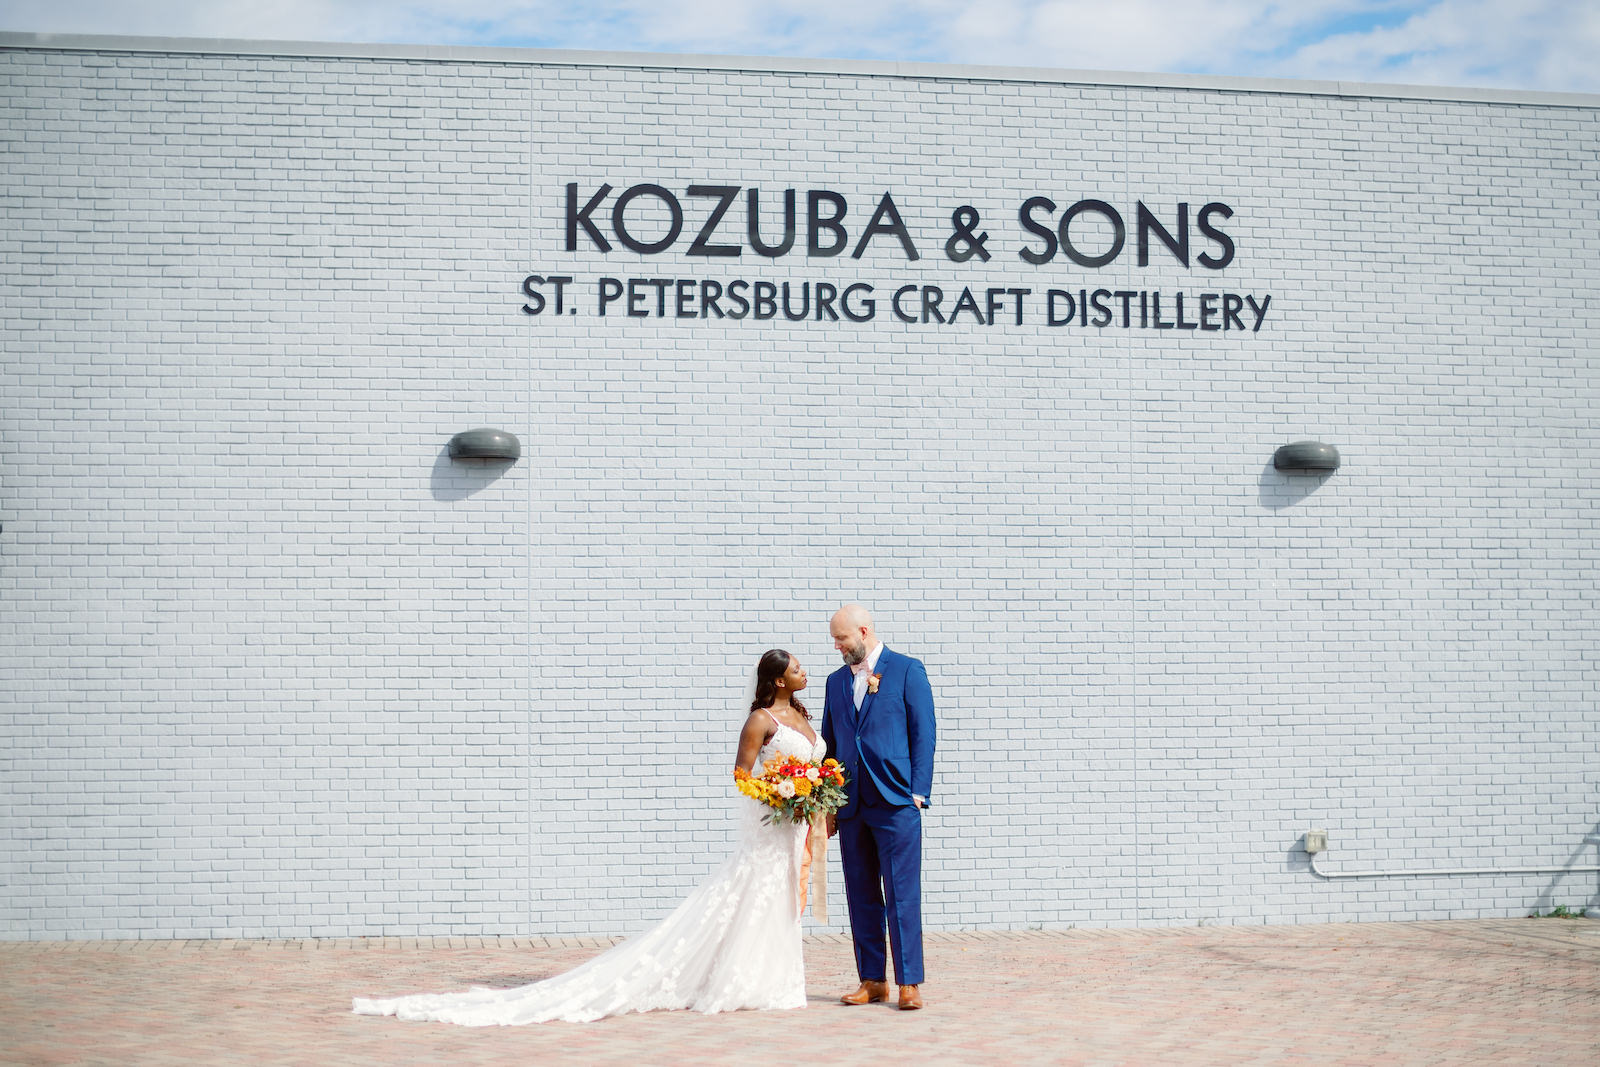 St. Petersburg Bride and Groom at Kozuba & Sons Craft Distillery, Modern Boho Florida Bride Holding Vibrant Autumn-Inspired Floral Bouquet with Orange, Yellow, Red and White Florals, Bride Wearing White Lace Mermaid Style Dress, Groom in Dark Blue Suit   Tampa Bay Wedding Planner Coastal Coordinating